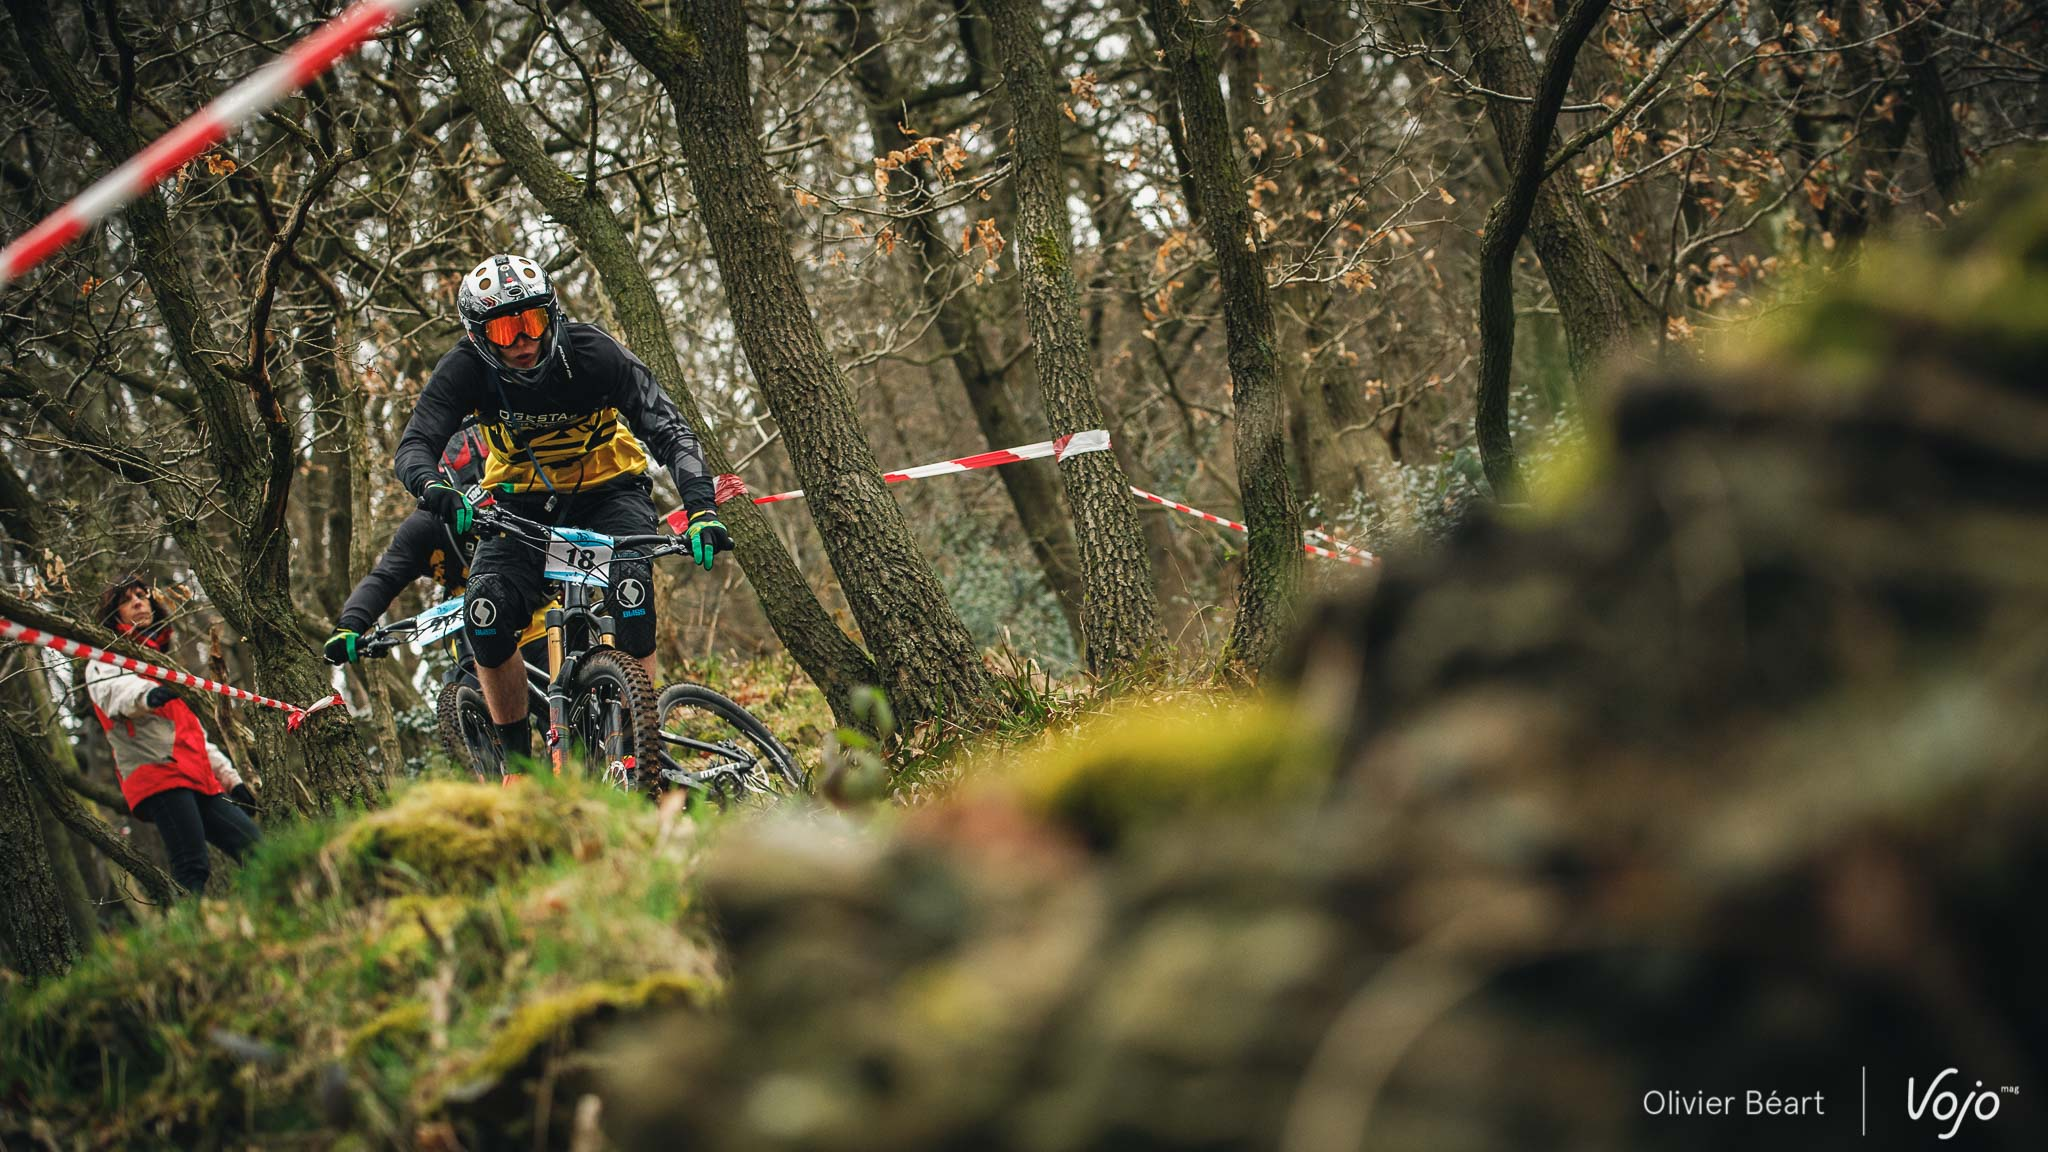 Belgian_Enduro_Cup_Chaudfontaine_2016_Copyright_OBeart_Vojomag-20